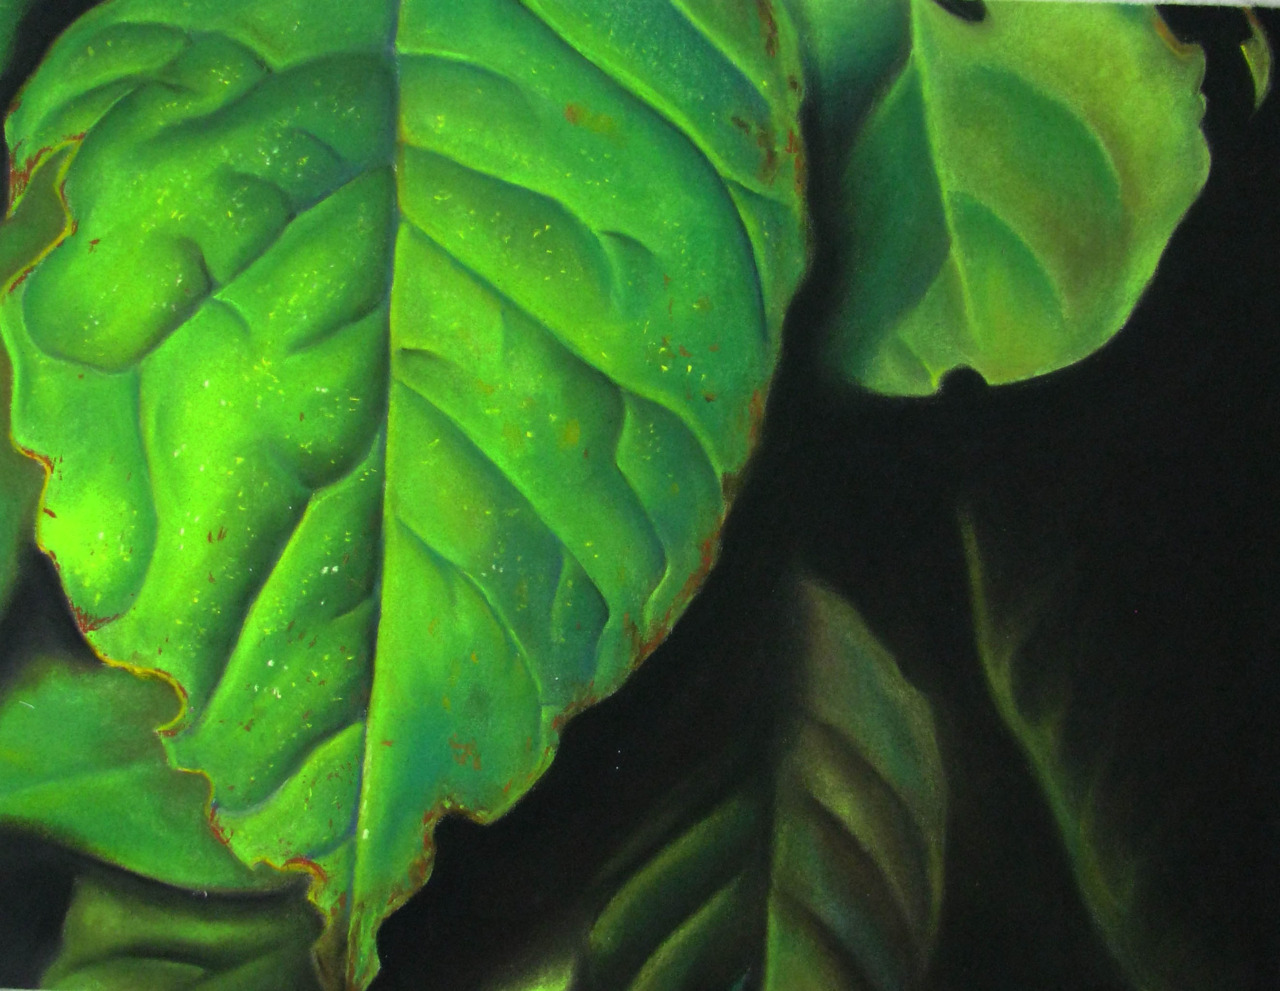 Leaves   2011. Chalk pastel on paper. 19 x 25.